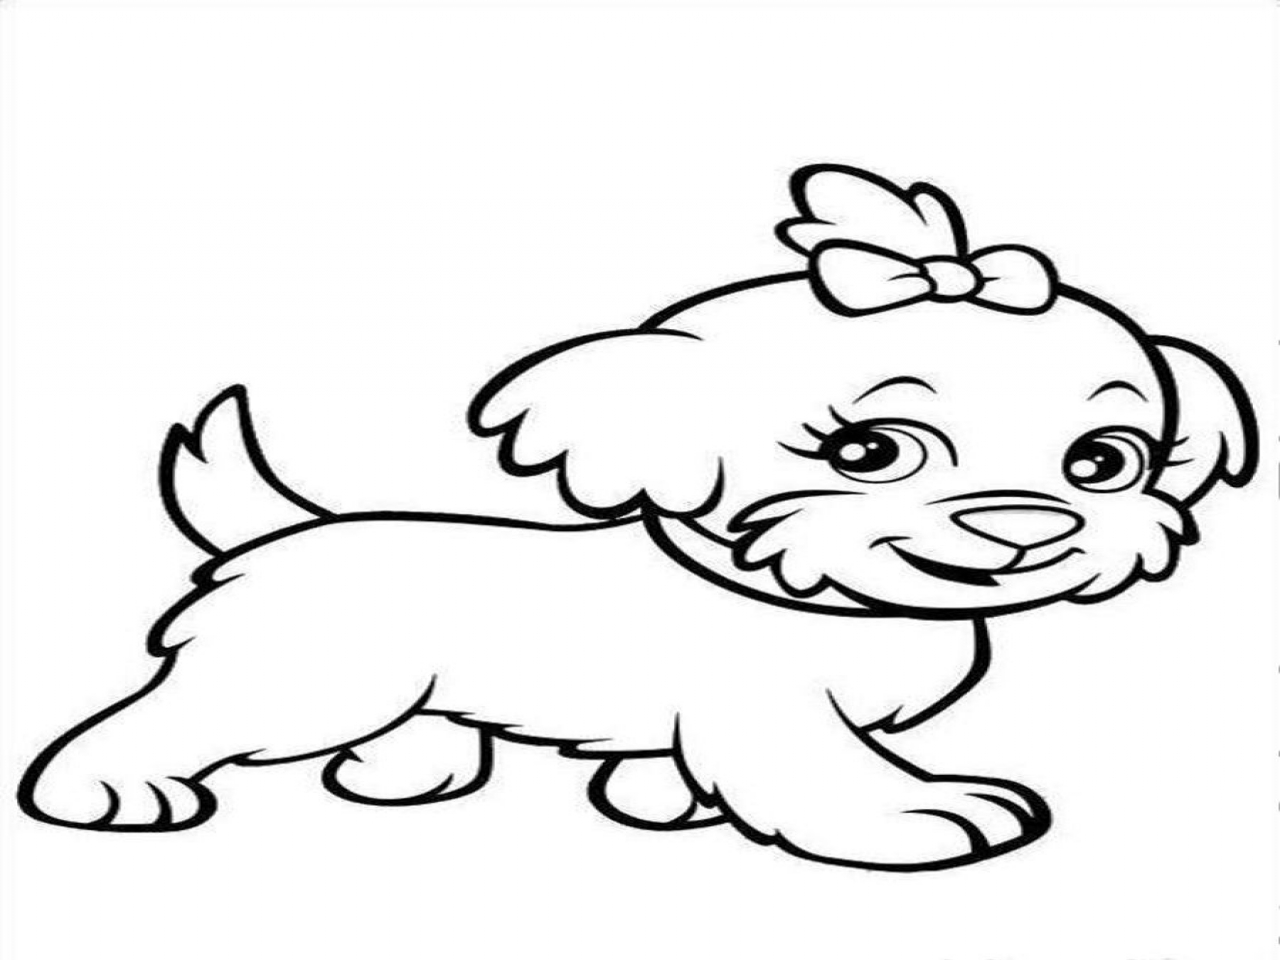 coloring dog face 9 puppy coloring pages jpg ai illustrator download face dog coloring